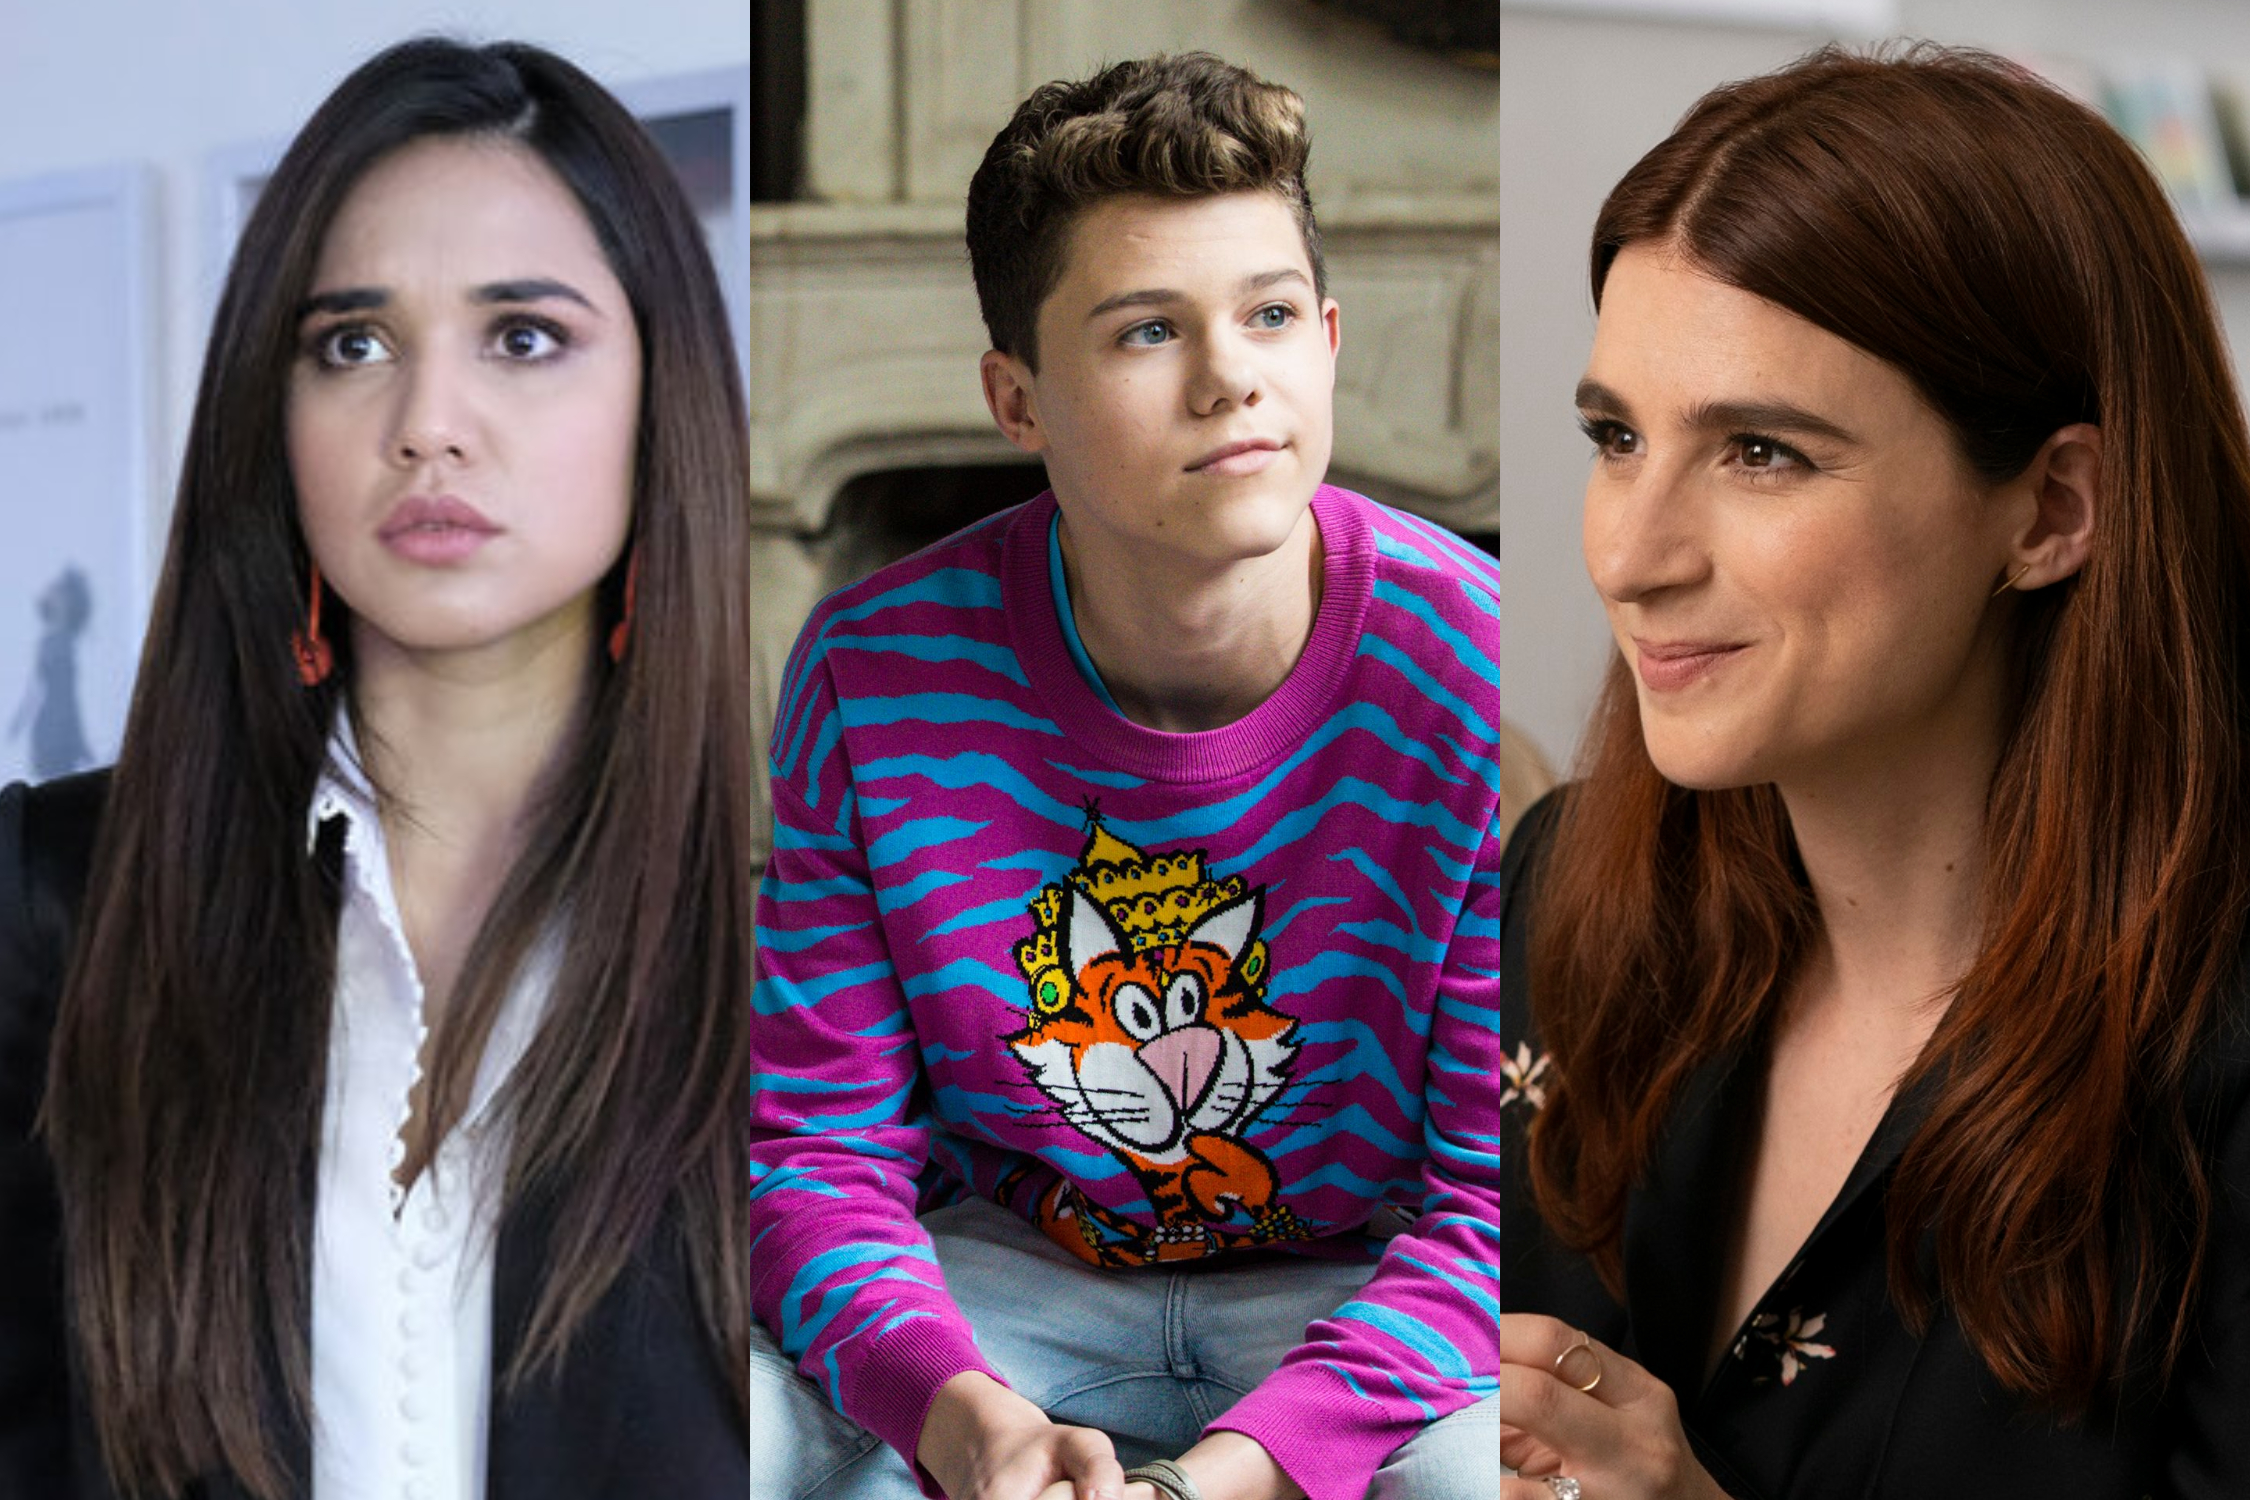 The 5 best TV shows of 2019 so far